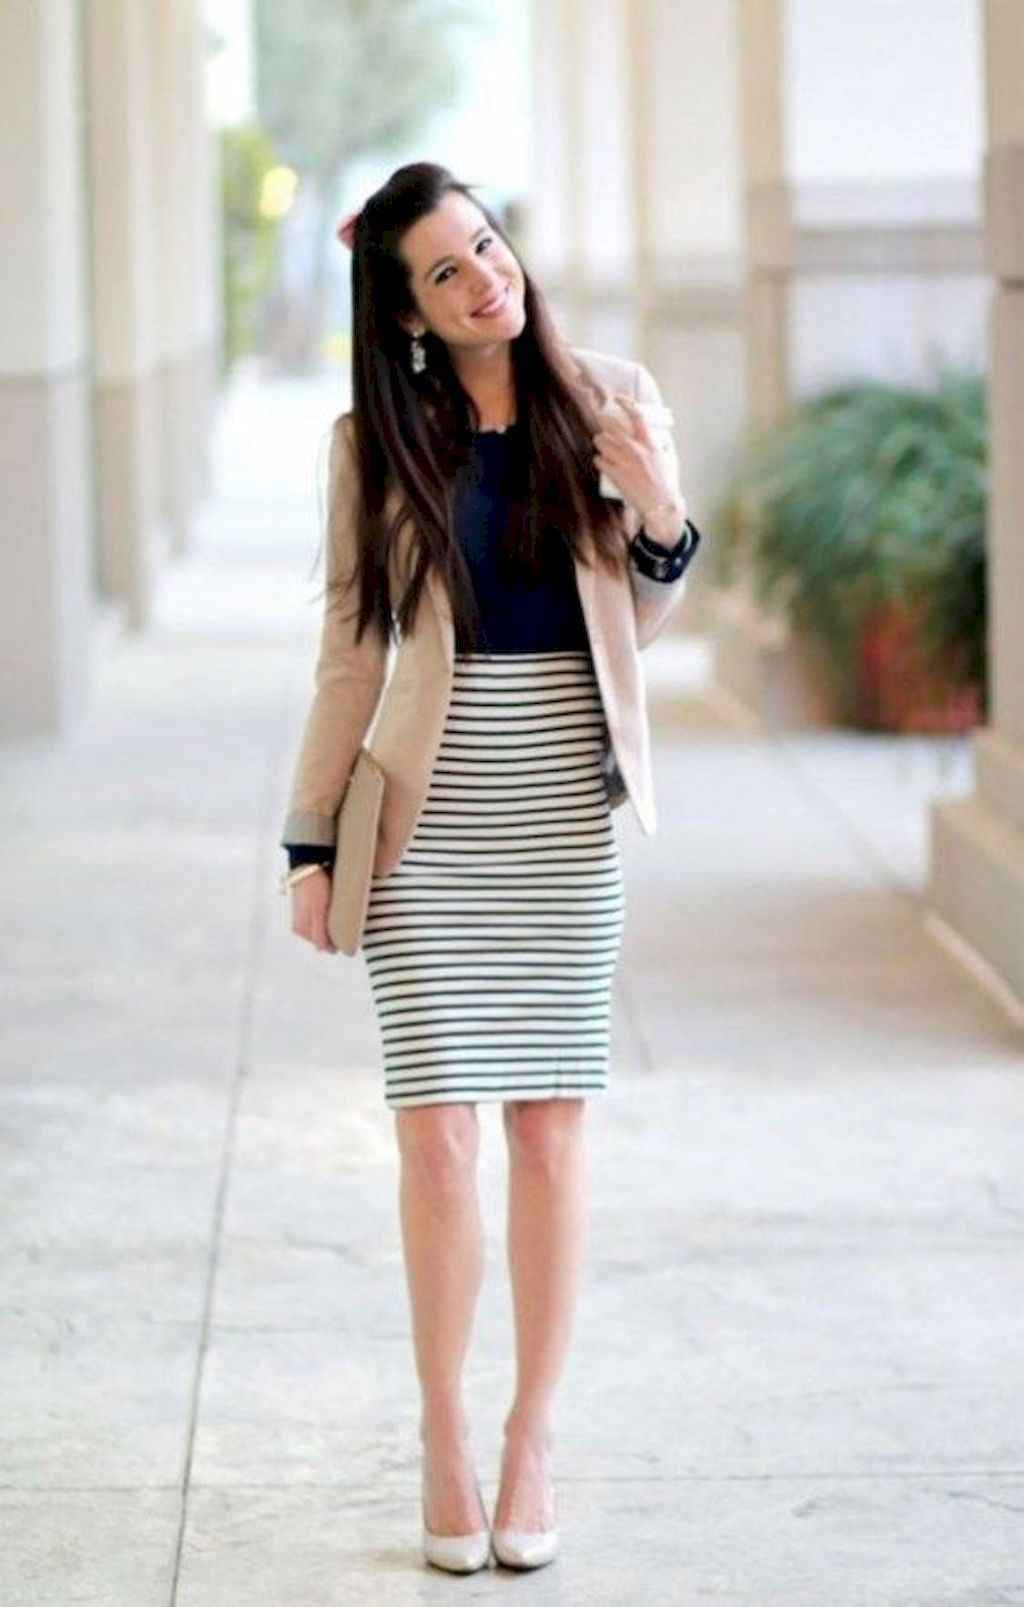 ad9bc766d36 53 Professional Work Outfits Ideas for Women to Try .